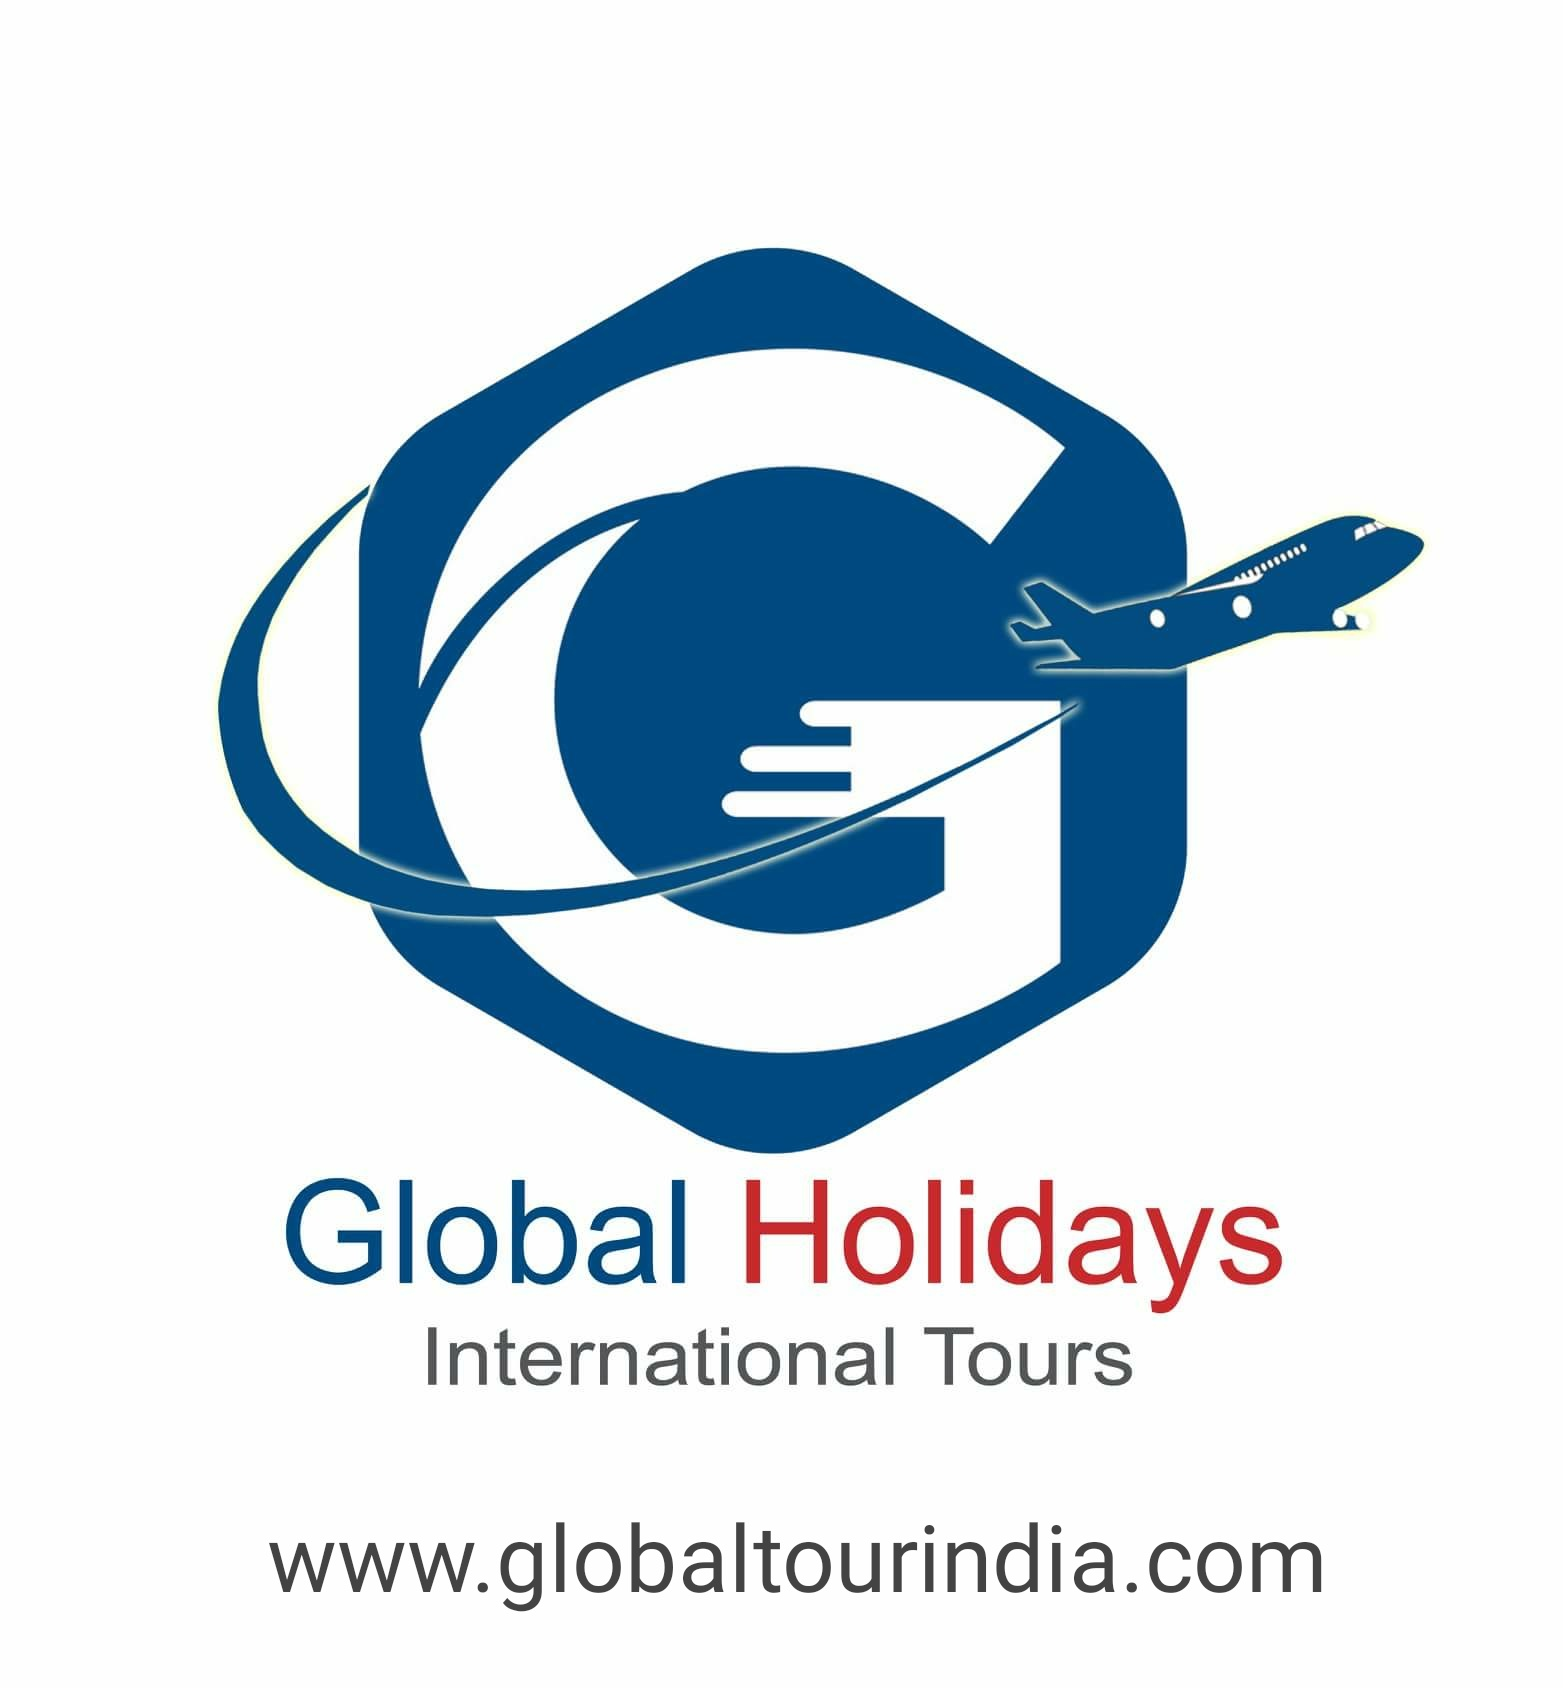 Global Holiday International Tours